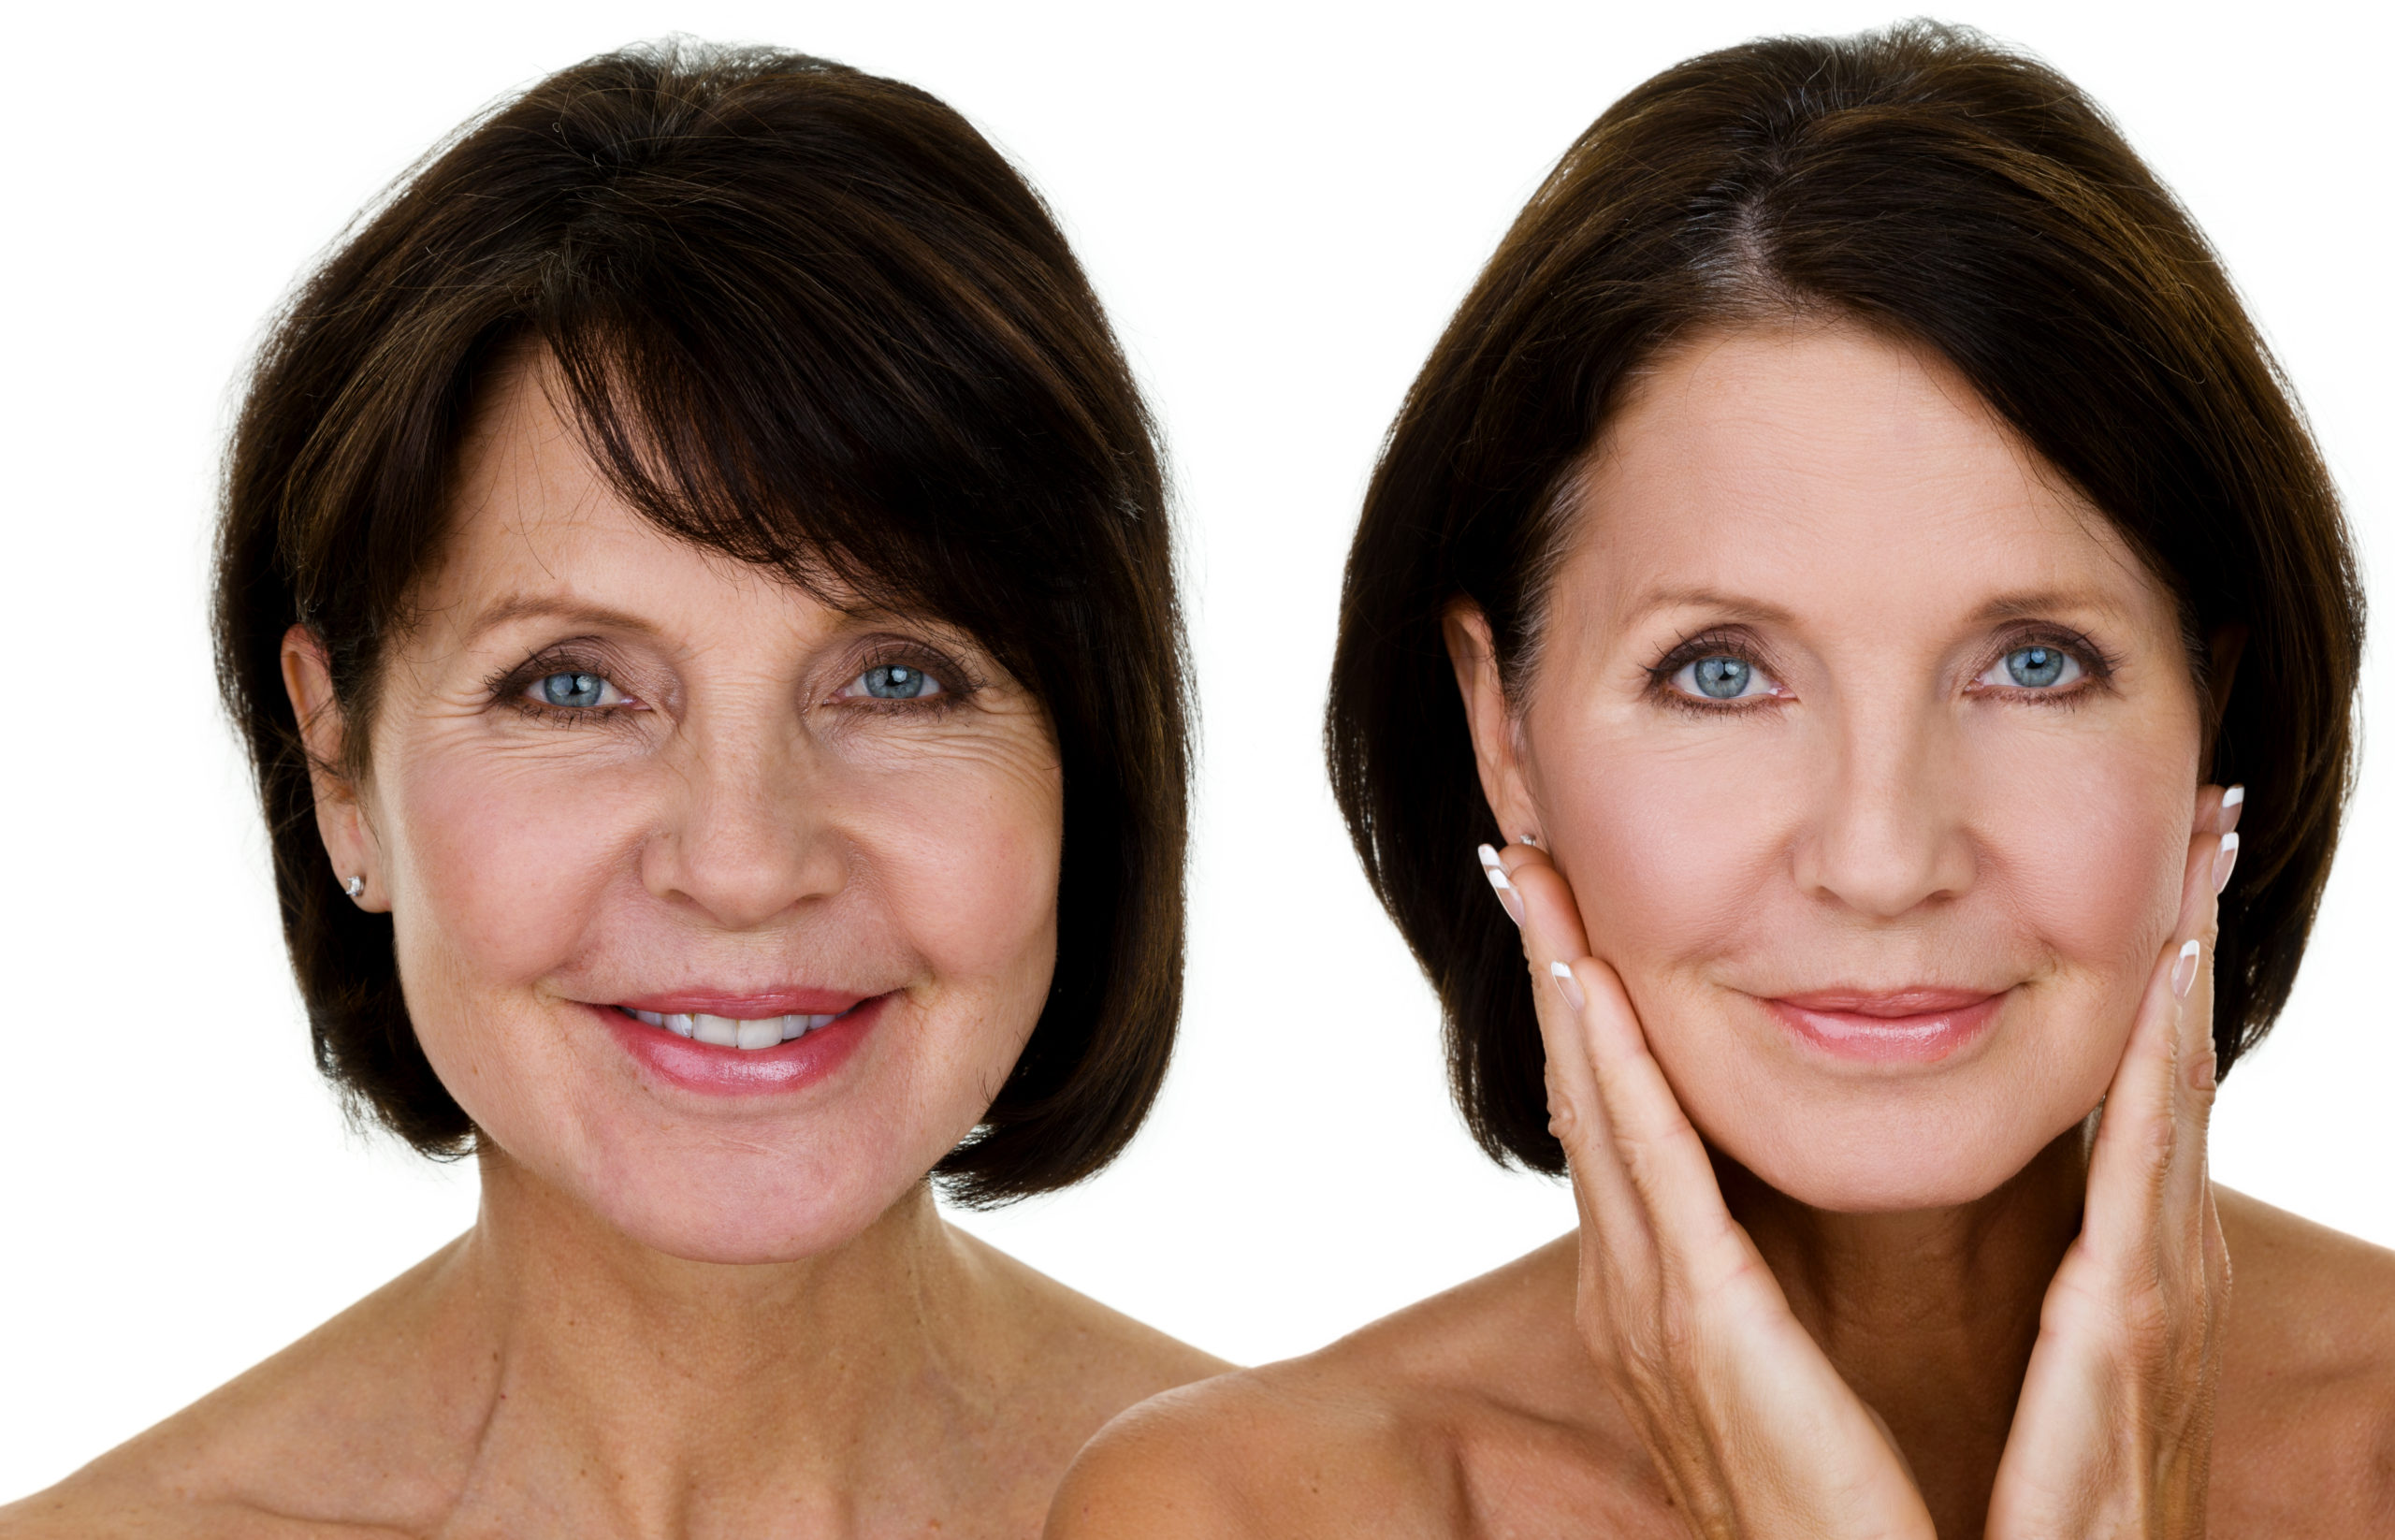 Mature woman before and after pictures.